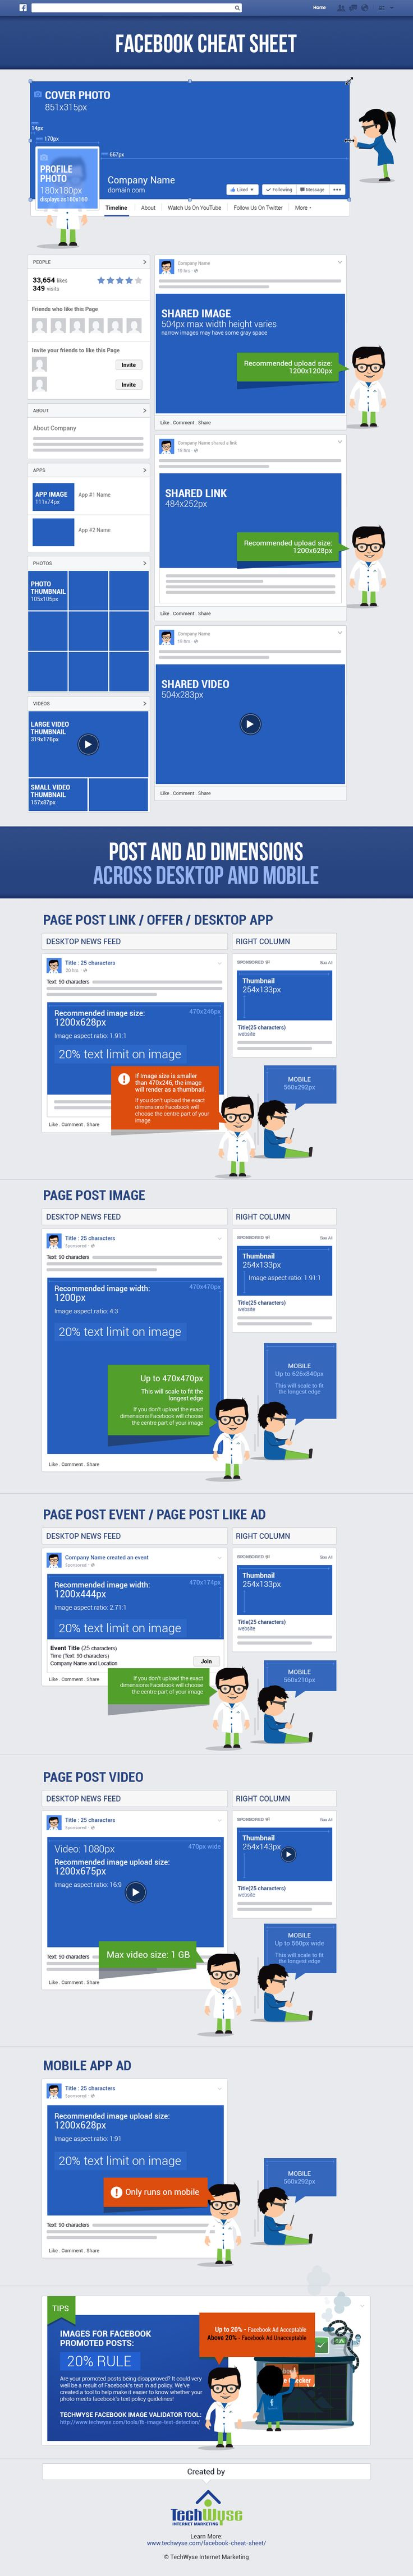 Facebook Cheat Sheet: Image Size and Dimensions UPDATED! December 2014!!